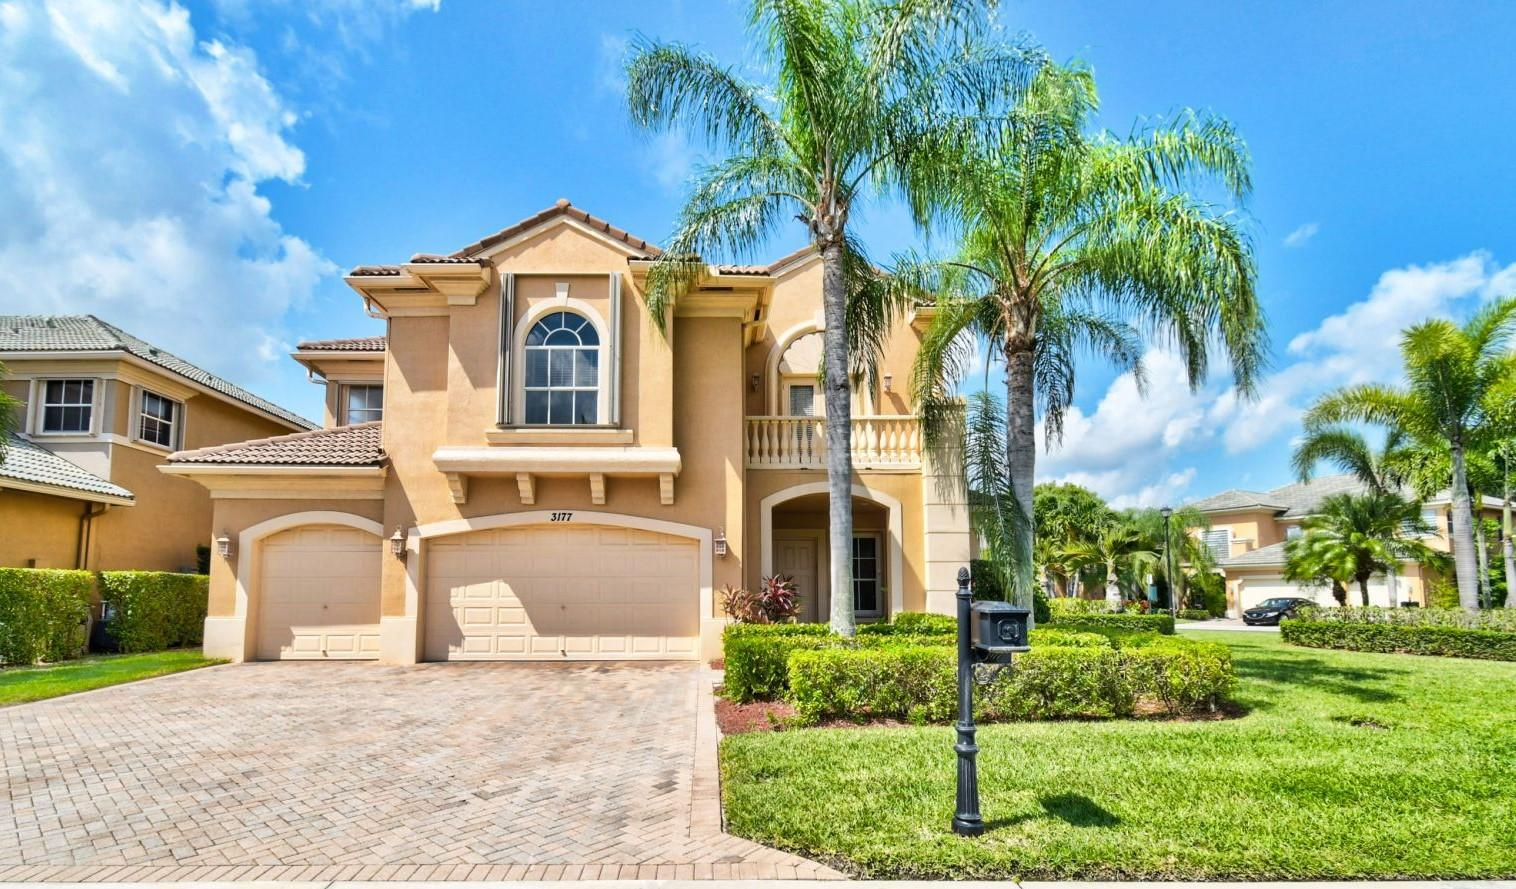 3177 Santa Margarita Road  West Palm Beach, FL 33411